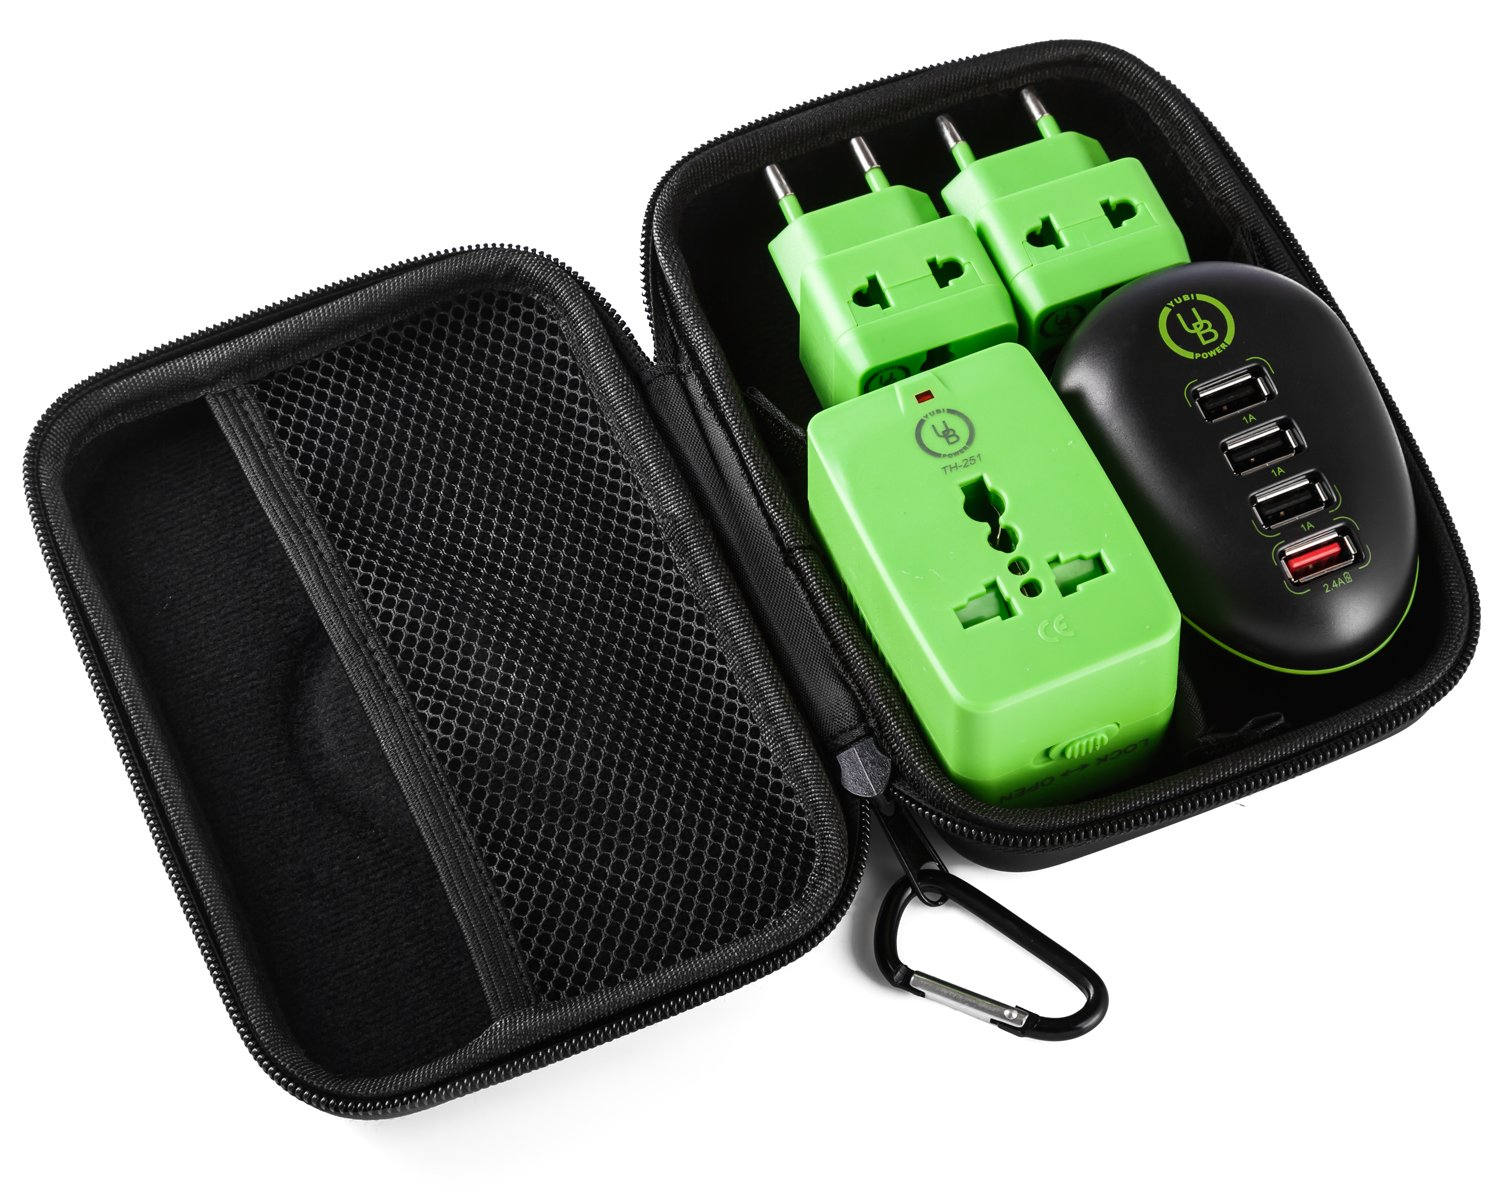 Travel Kit by Yubi Power Set of 4 Port USB Charging Station - EU Plug + universal Adapter 2 universal outlets with fold-able plugs Type C - G - A - I + 2 universal adapters Type C plug + carrying case